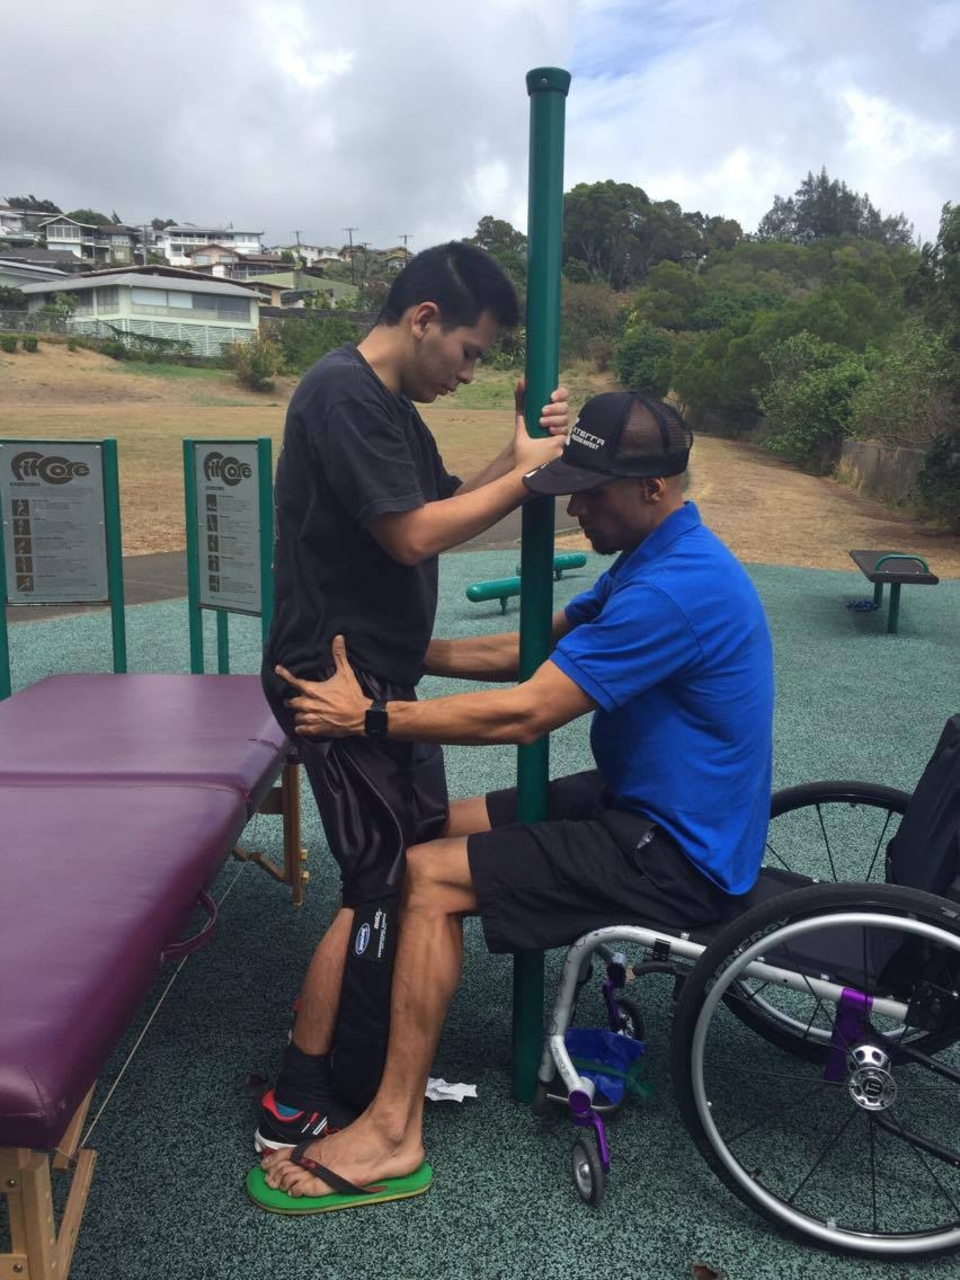 Sergio assisting Mycah as part of his therapy.